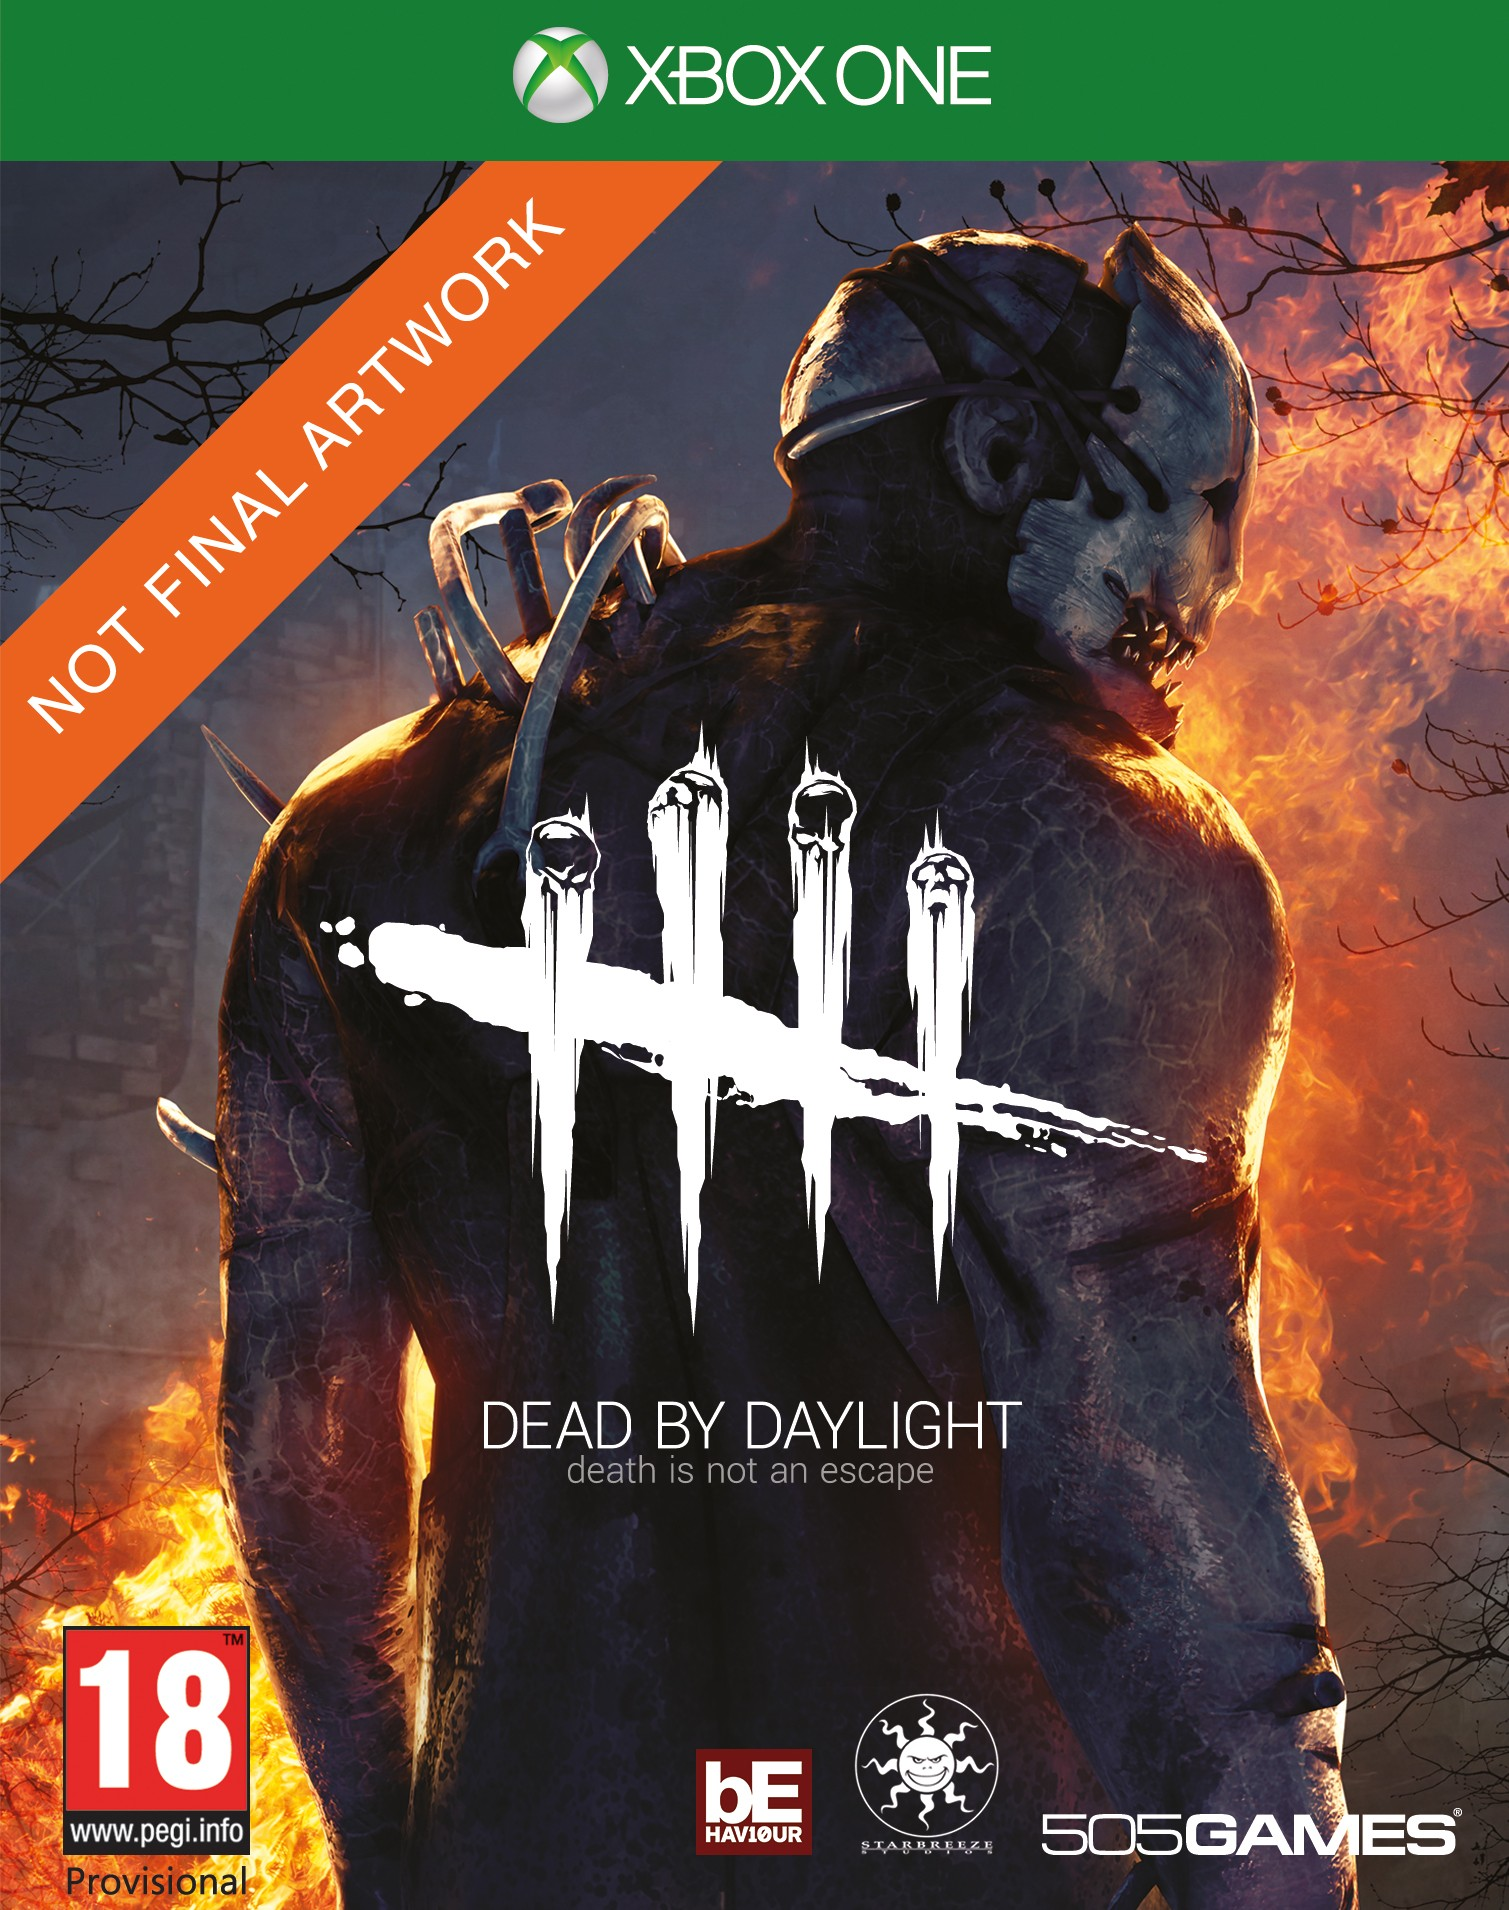 2D XB1 Dead by Daylight PEGI